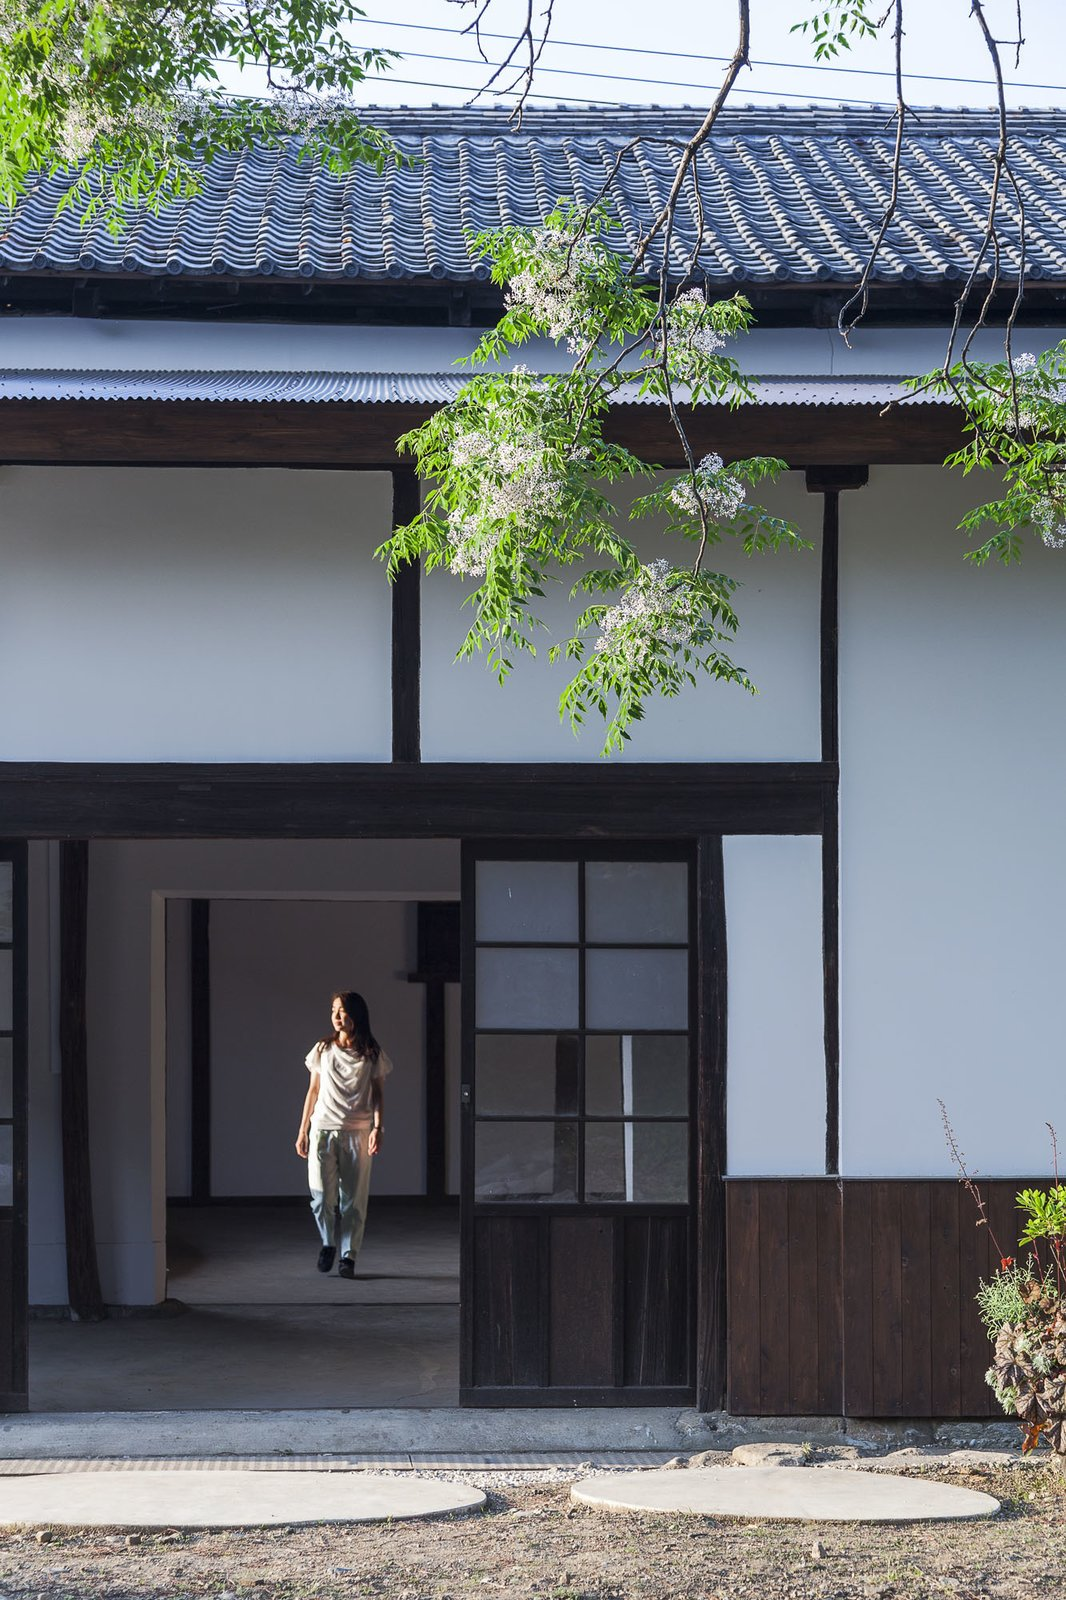 Rather than tear it down and build anew, the team repaired walls, rebuilt doors, and worked to preserve elements of the building's traditional design.  Photo 7 of 8 in Saved From Demolition, a Japanese Sake Warehouse Sees a Second Life